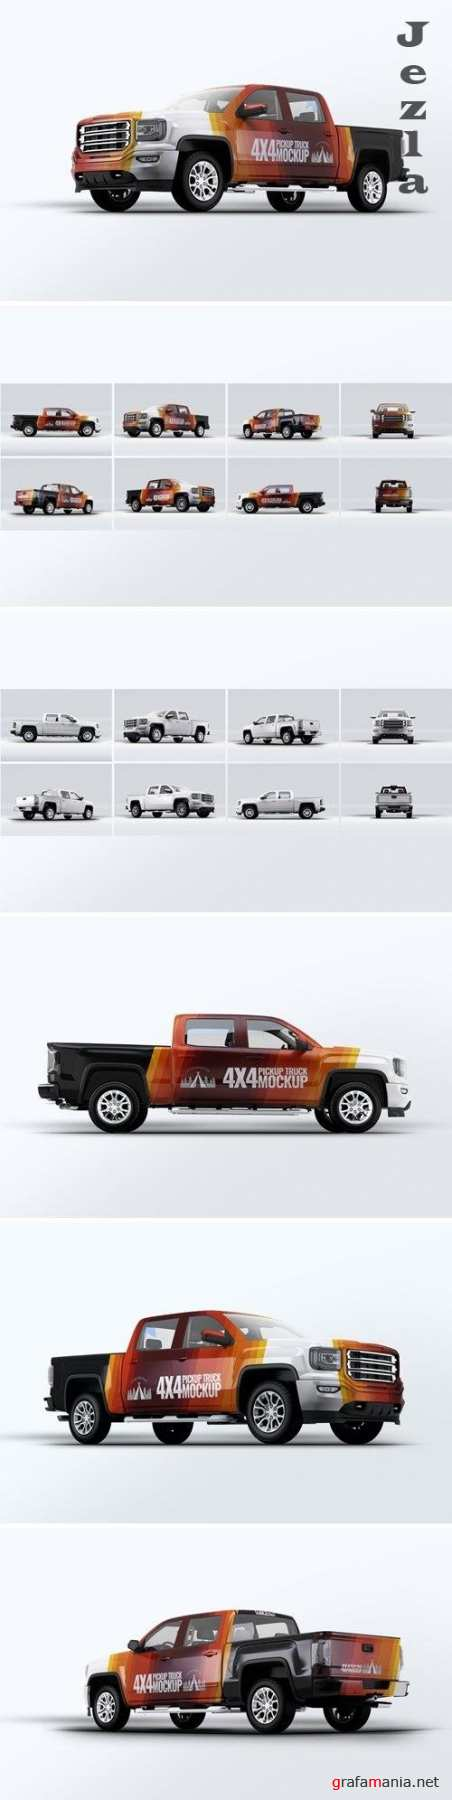 Truck 4X4 Mock-Up - HJ43RB3